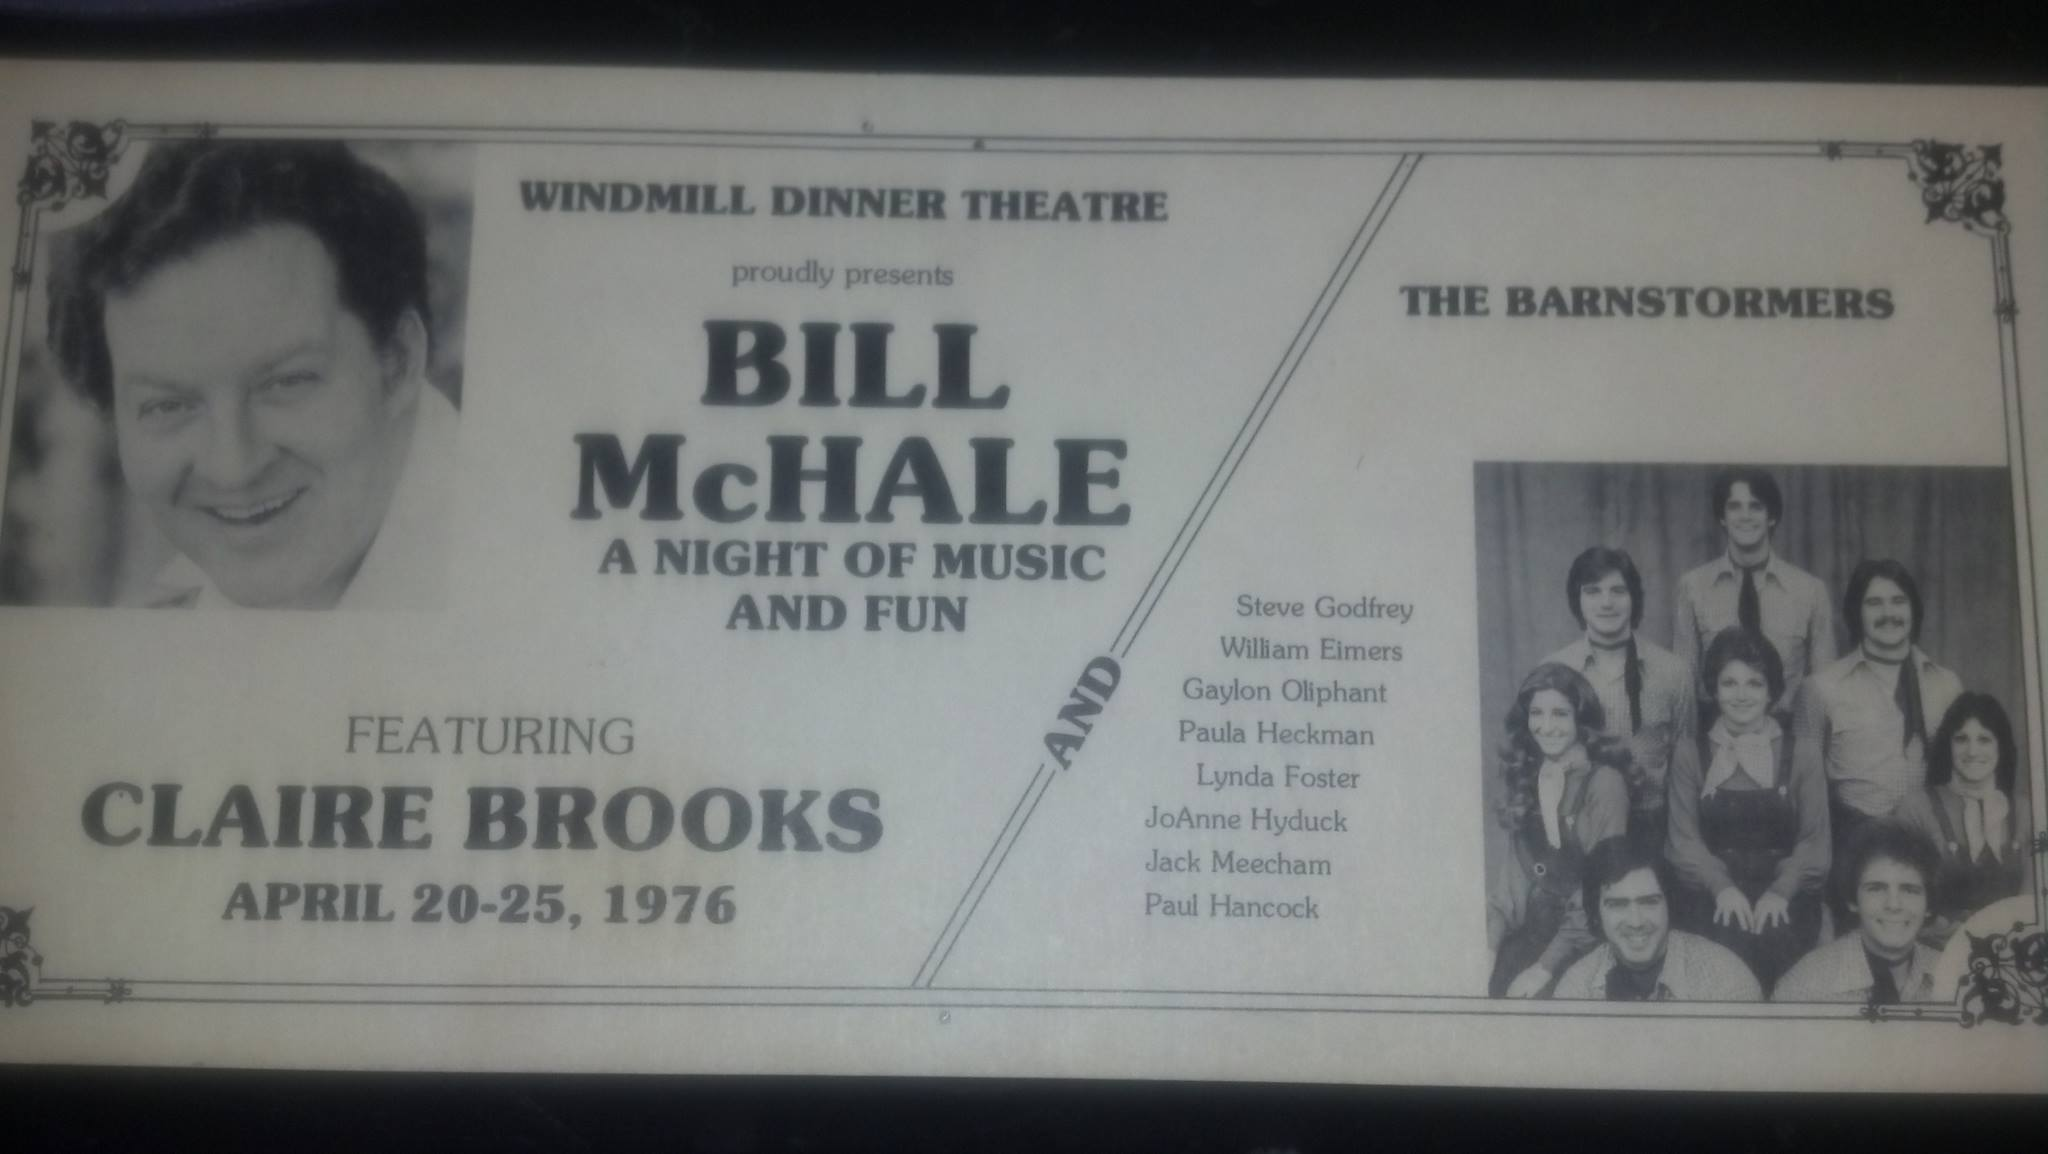 Windmill Dinner Theatre, Table Mats, 1976, Bill McHale